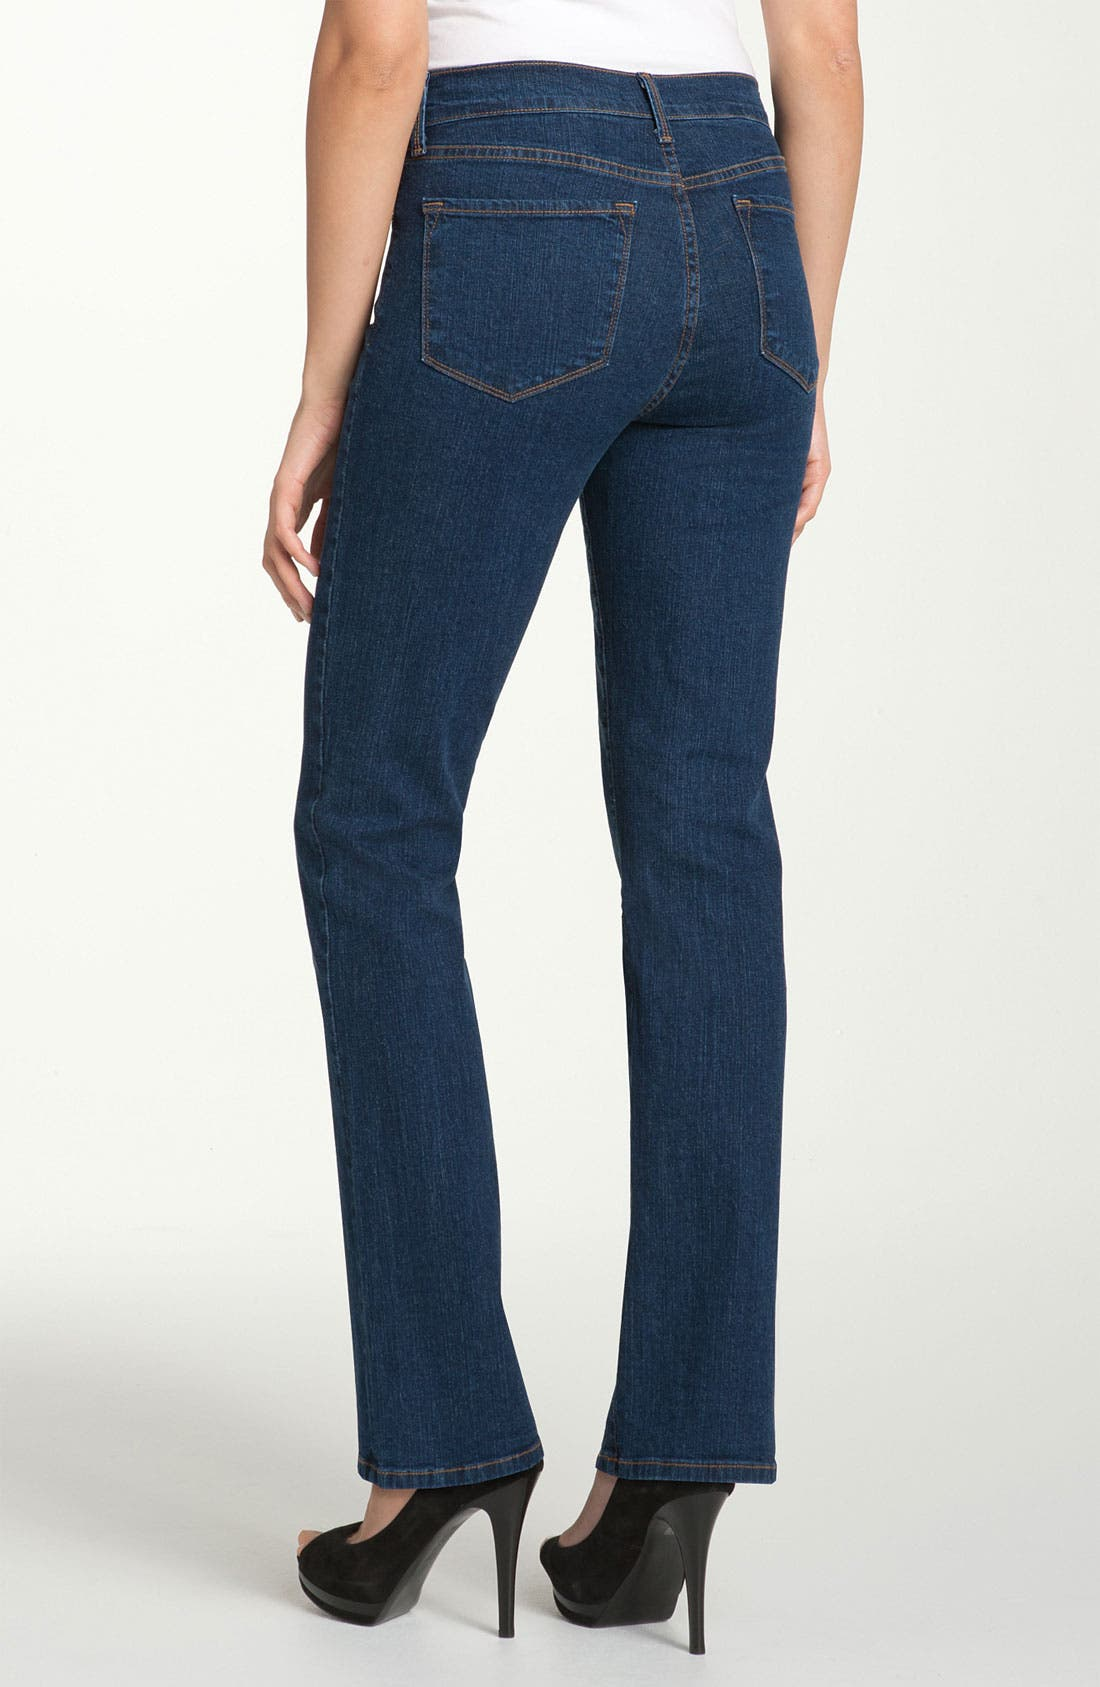 Alternate Image 2  - NYDJ 'Marilyn' Stretch Straight Leg Jeans (Denim) (Regular & Petite)